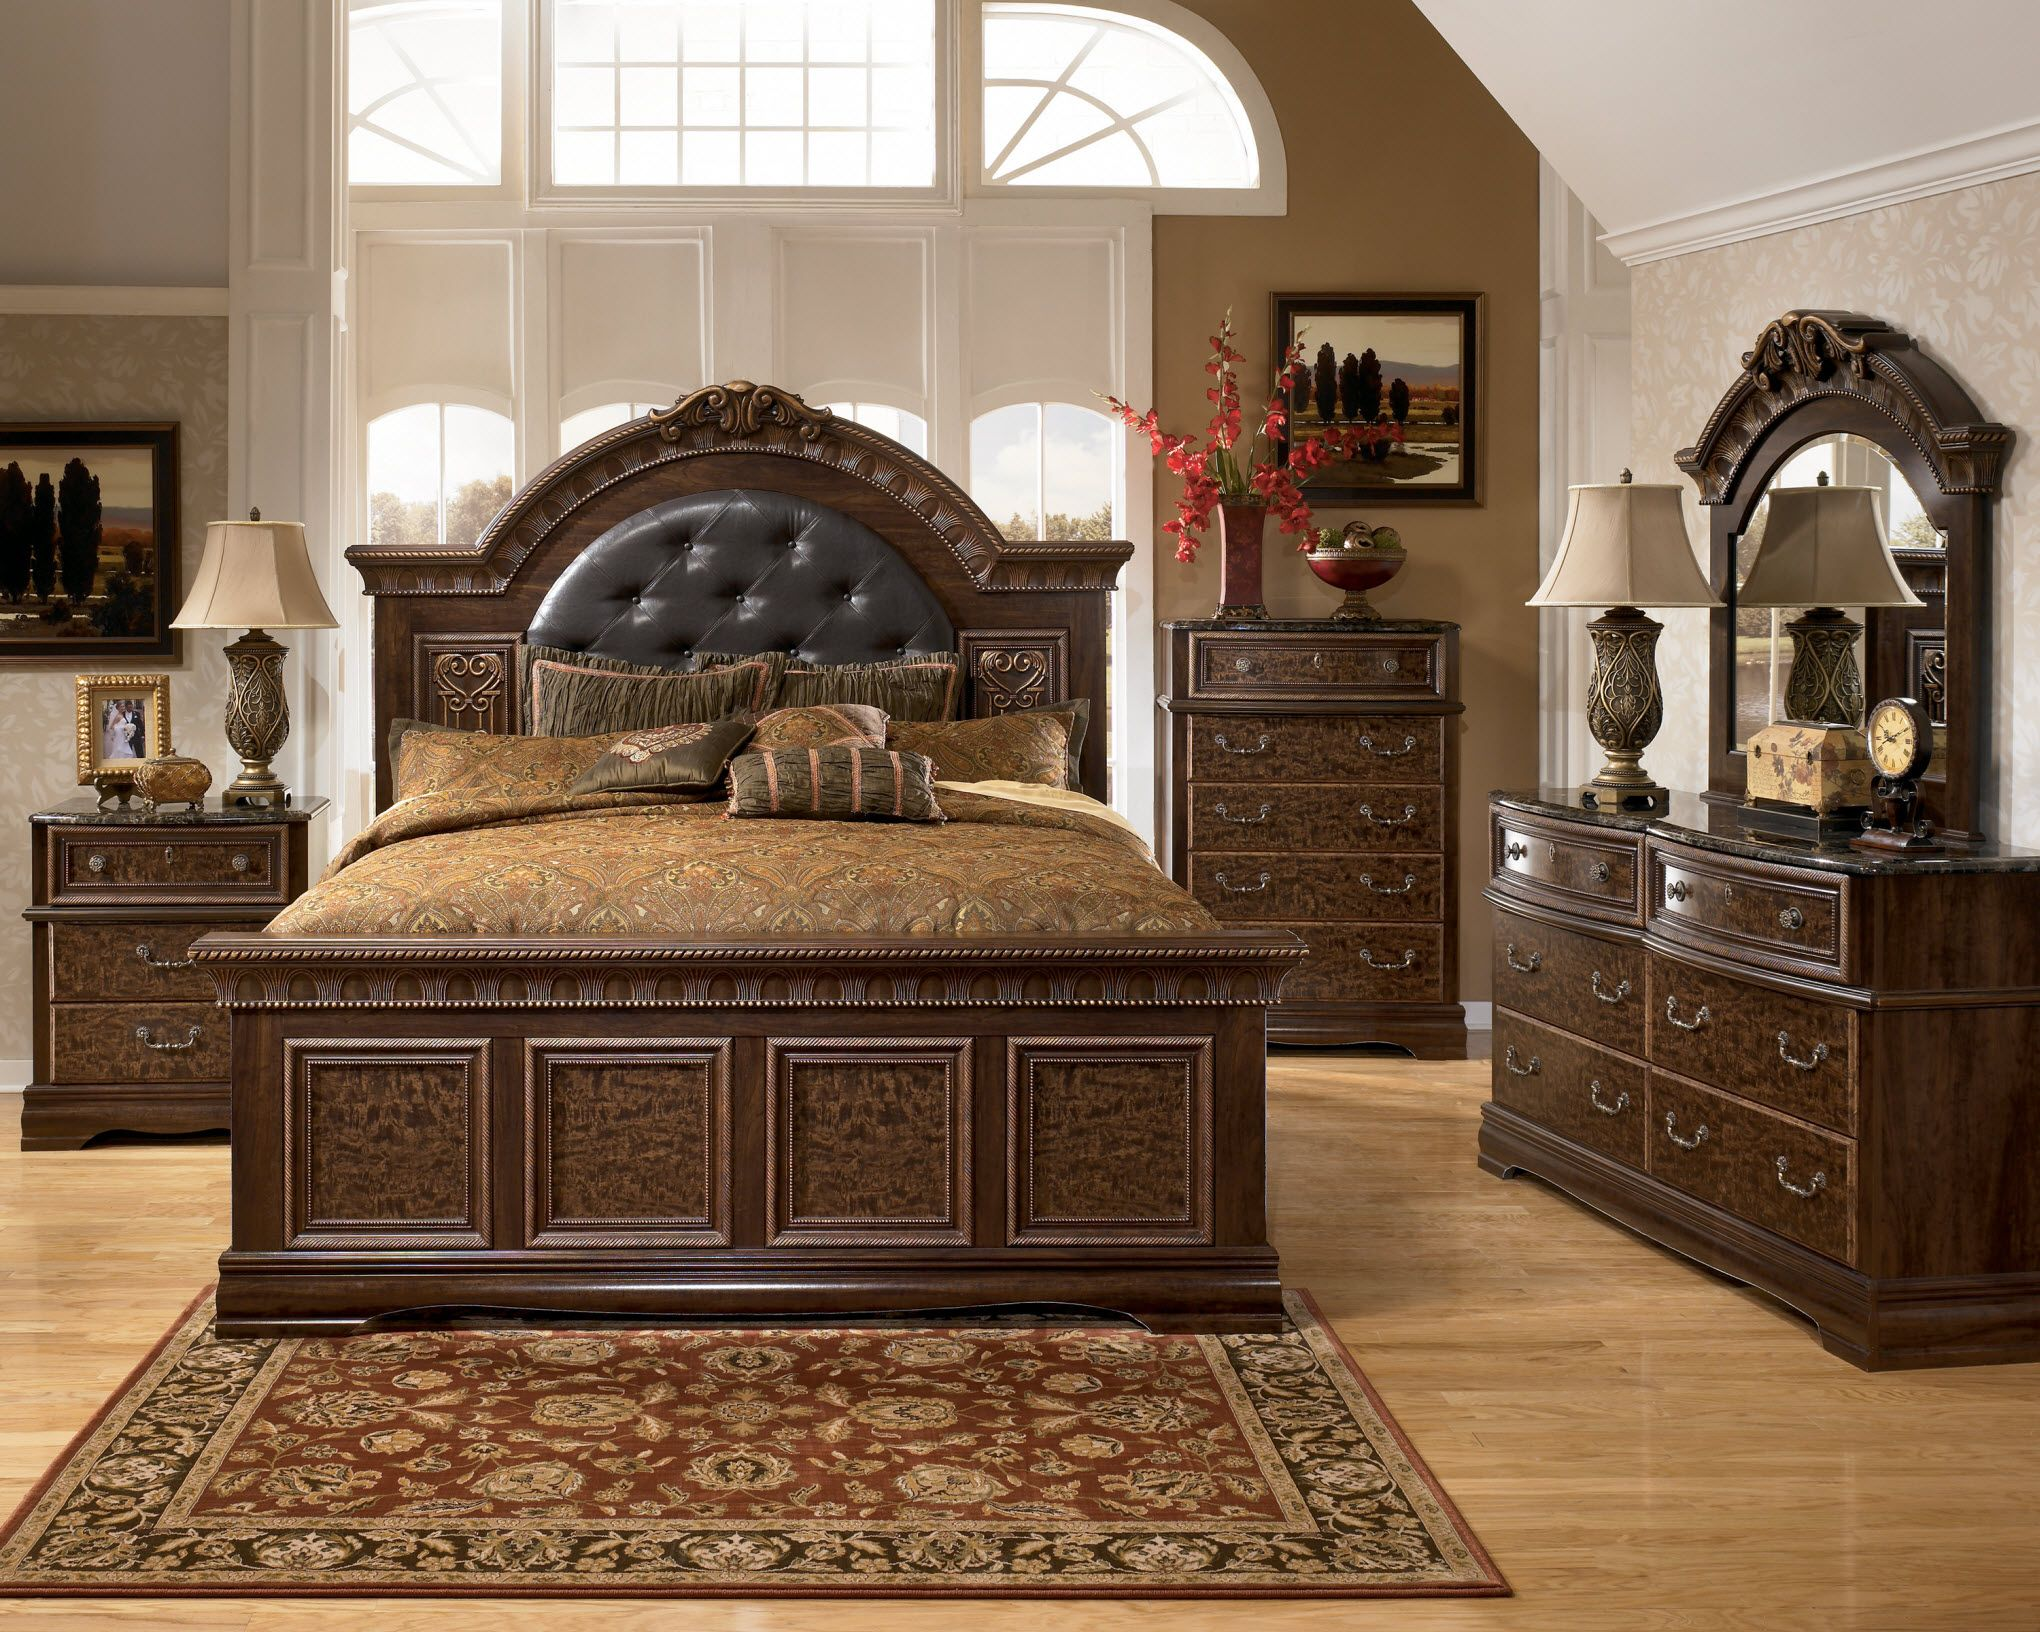 30 best Bedroom furniture images on Pinterest | Bedrooms, Master ...